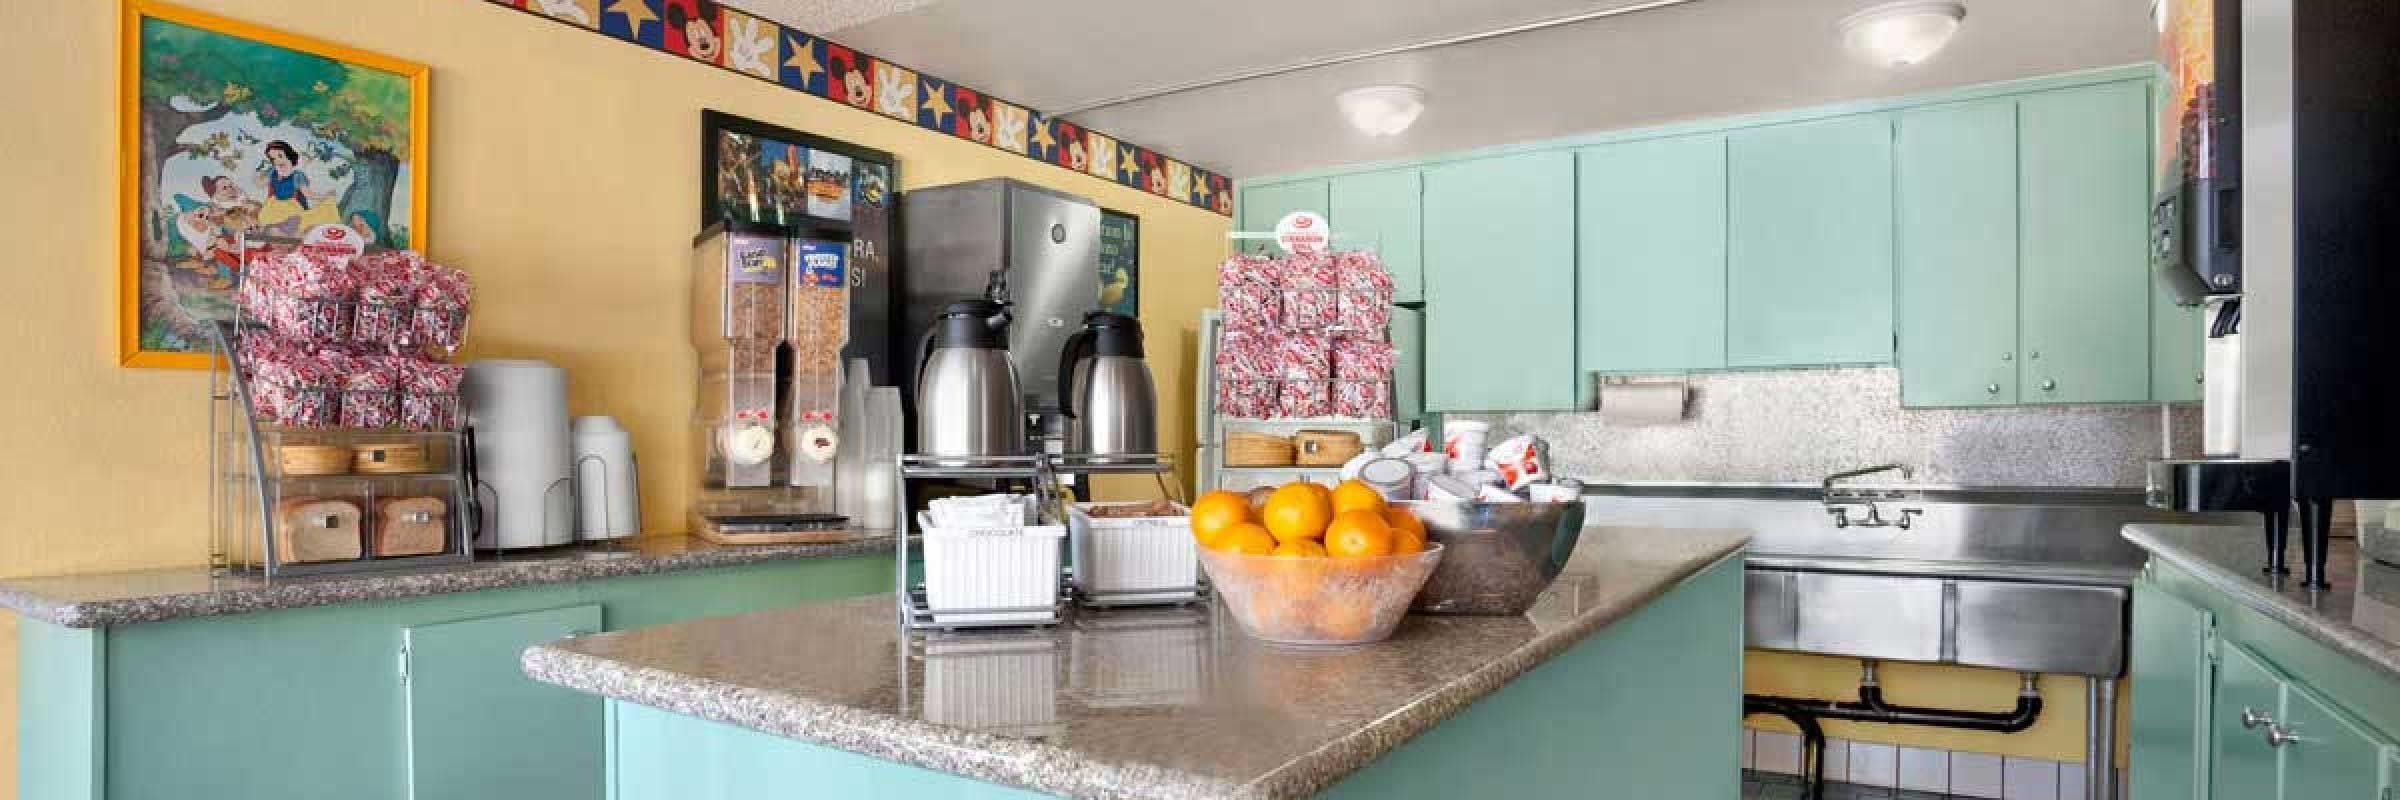 Kings Inn Anaheim — Hotel Near Disneyland — Best Value Anaheim Hotel ...